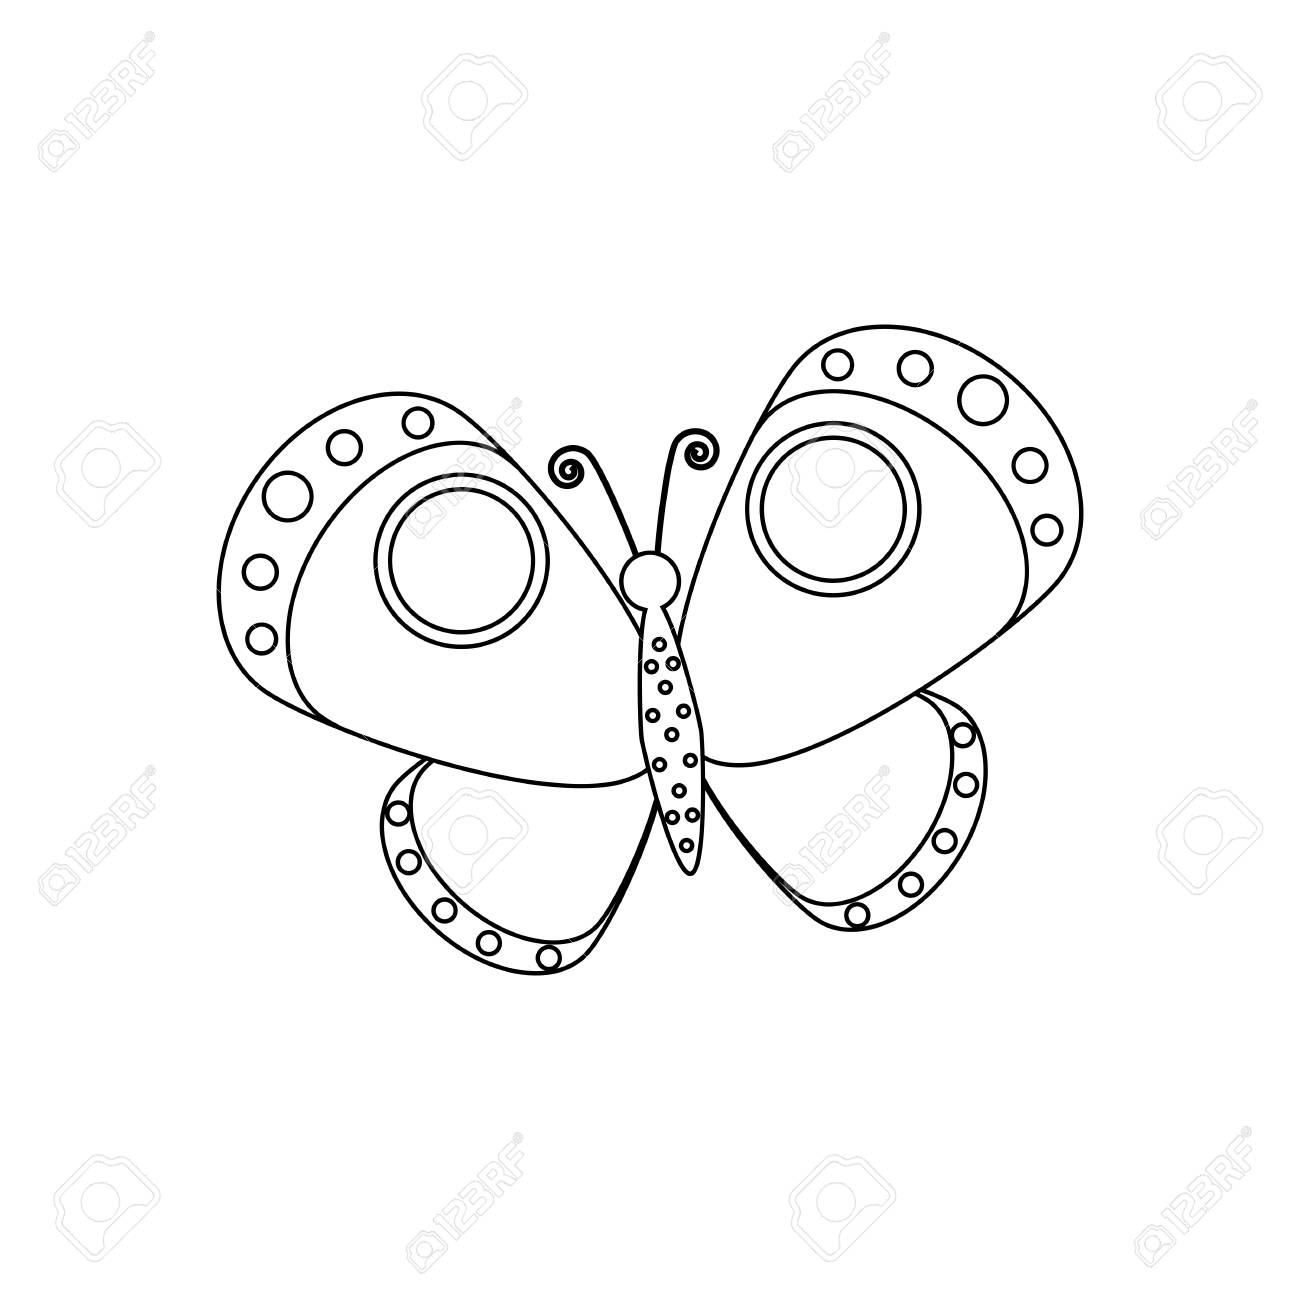 Free Butterfly Coloring Page - Butterfly Coloring Pages Png ... | 1300x1300